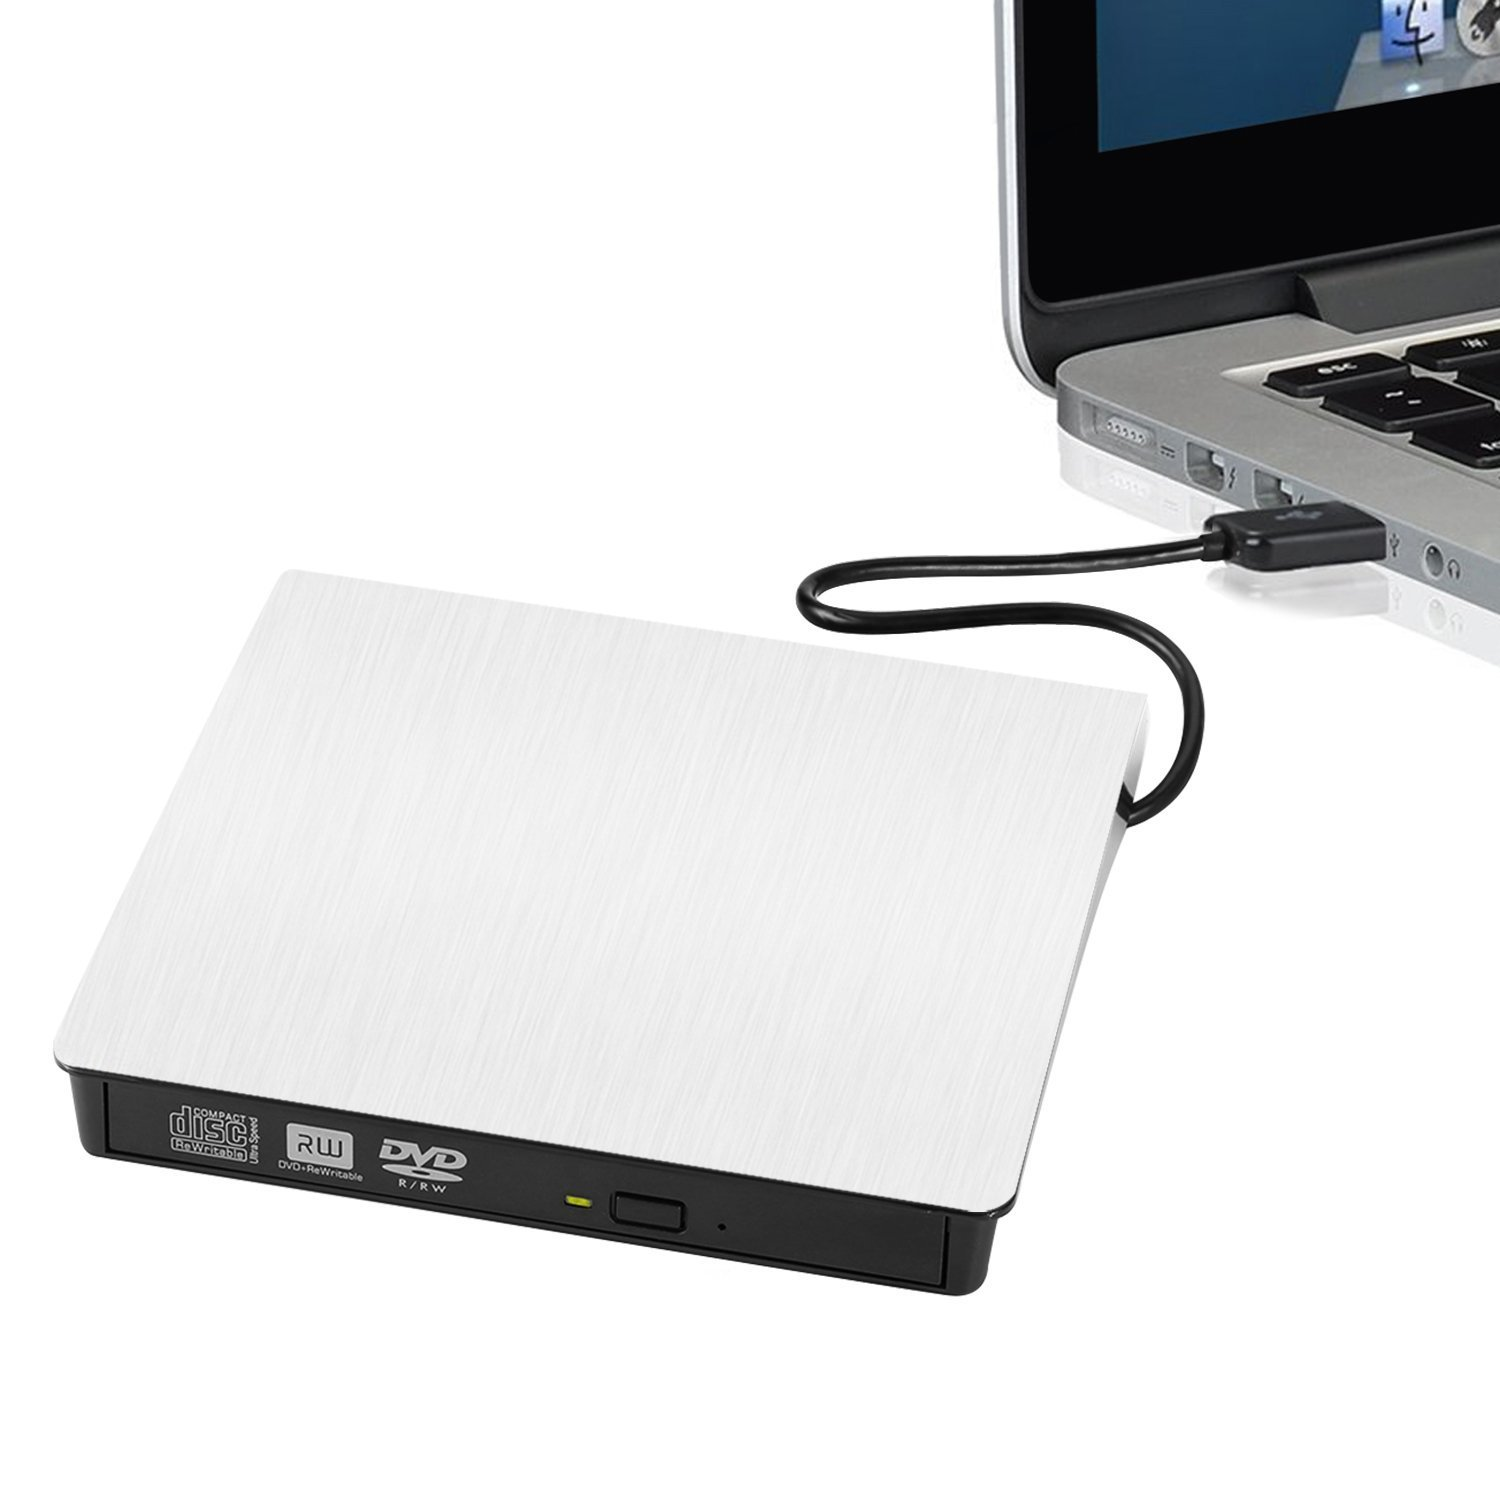 External DVD Writer, External USB 3.0 CD-RW/ DVD-RW Burner Writer External DVD Drive for Laptops Notebook Desktop PC (White) Portable Ultra Slim